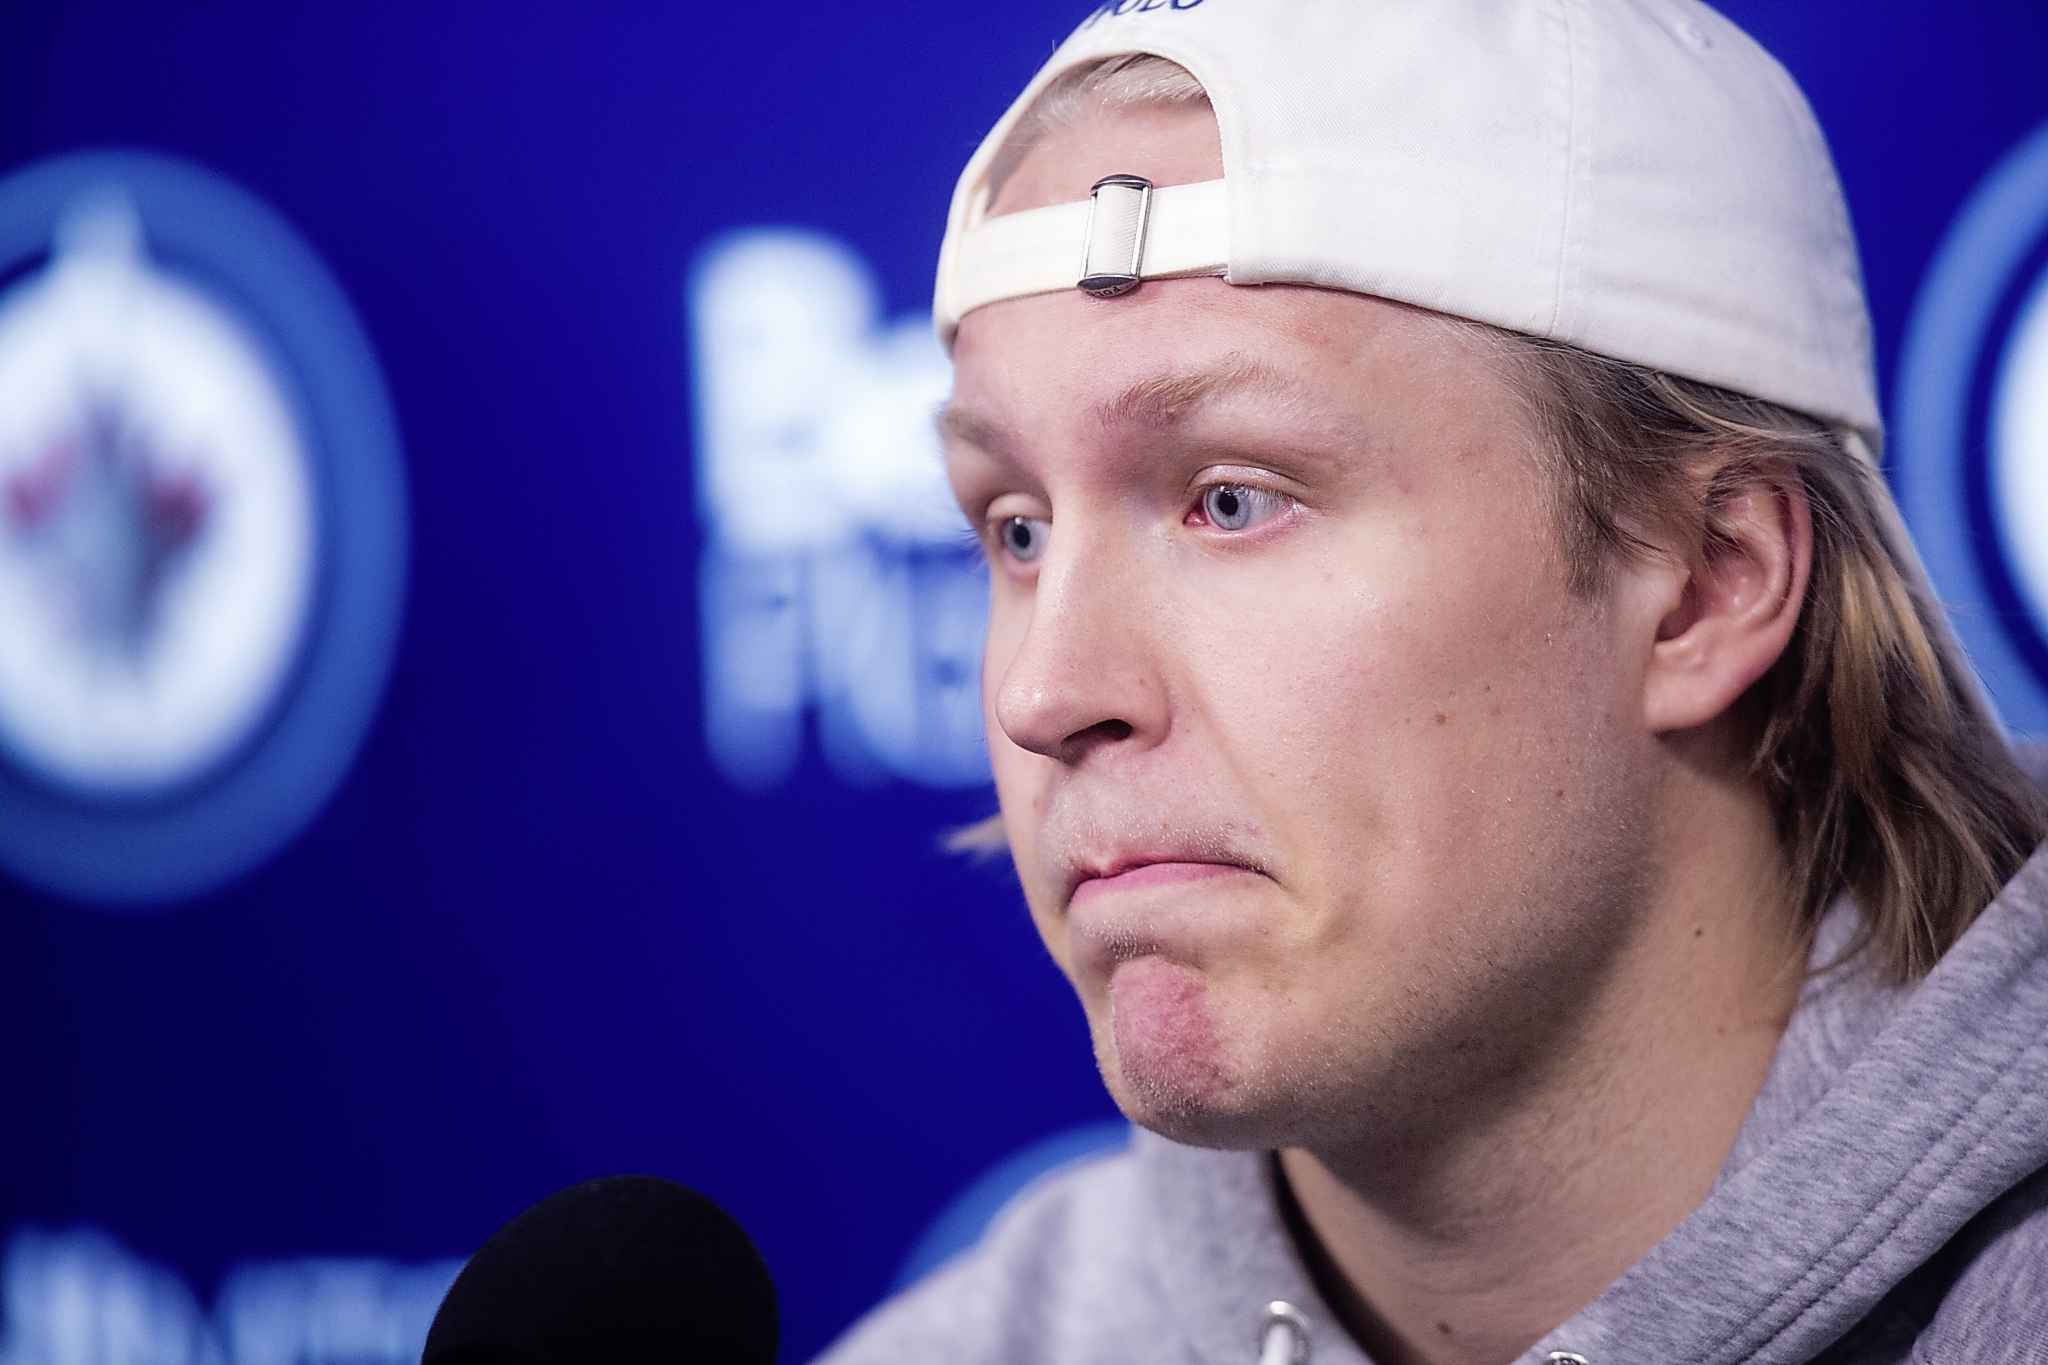 A clean-shaven Patrik Laine speaks to the media at the end of the Jets' season at the Bell MTS Centre on Monday.